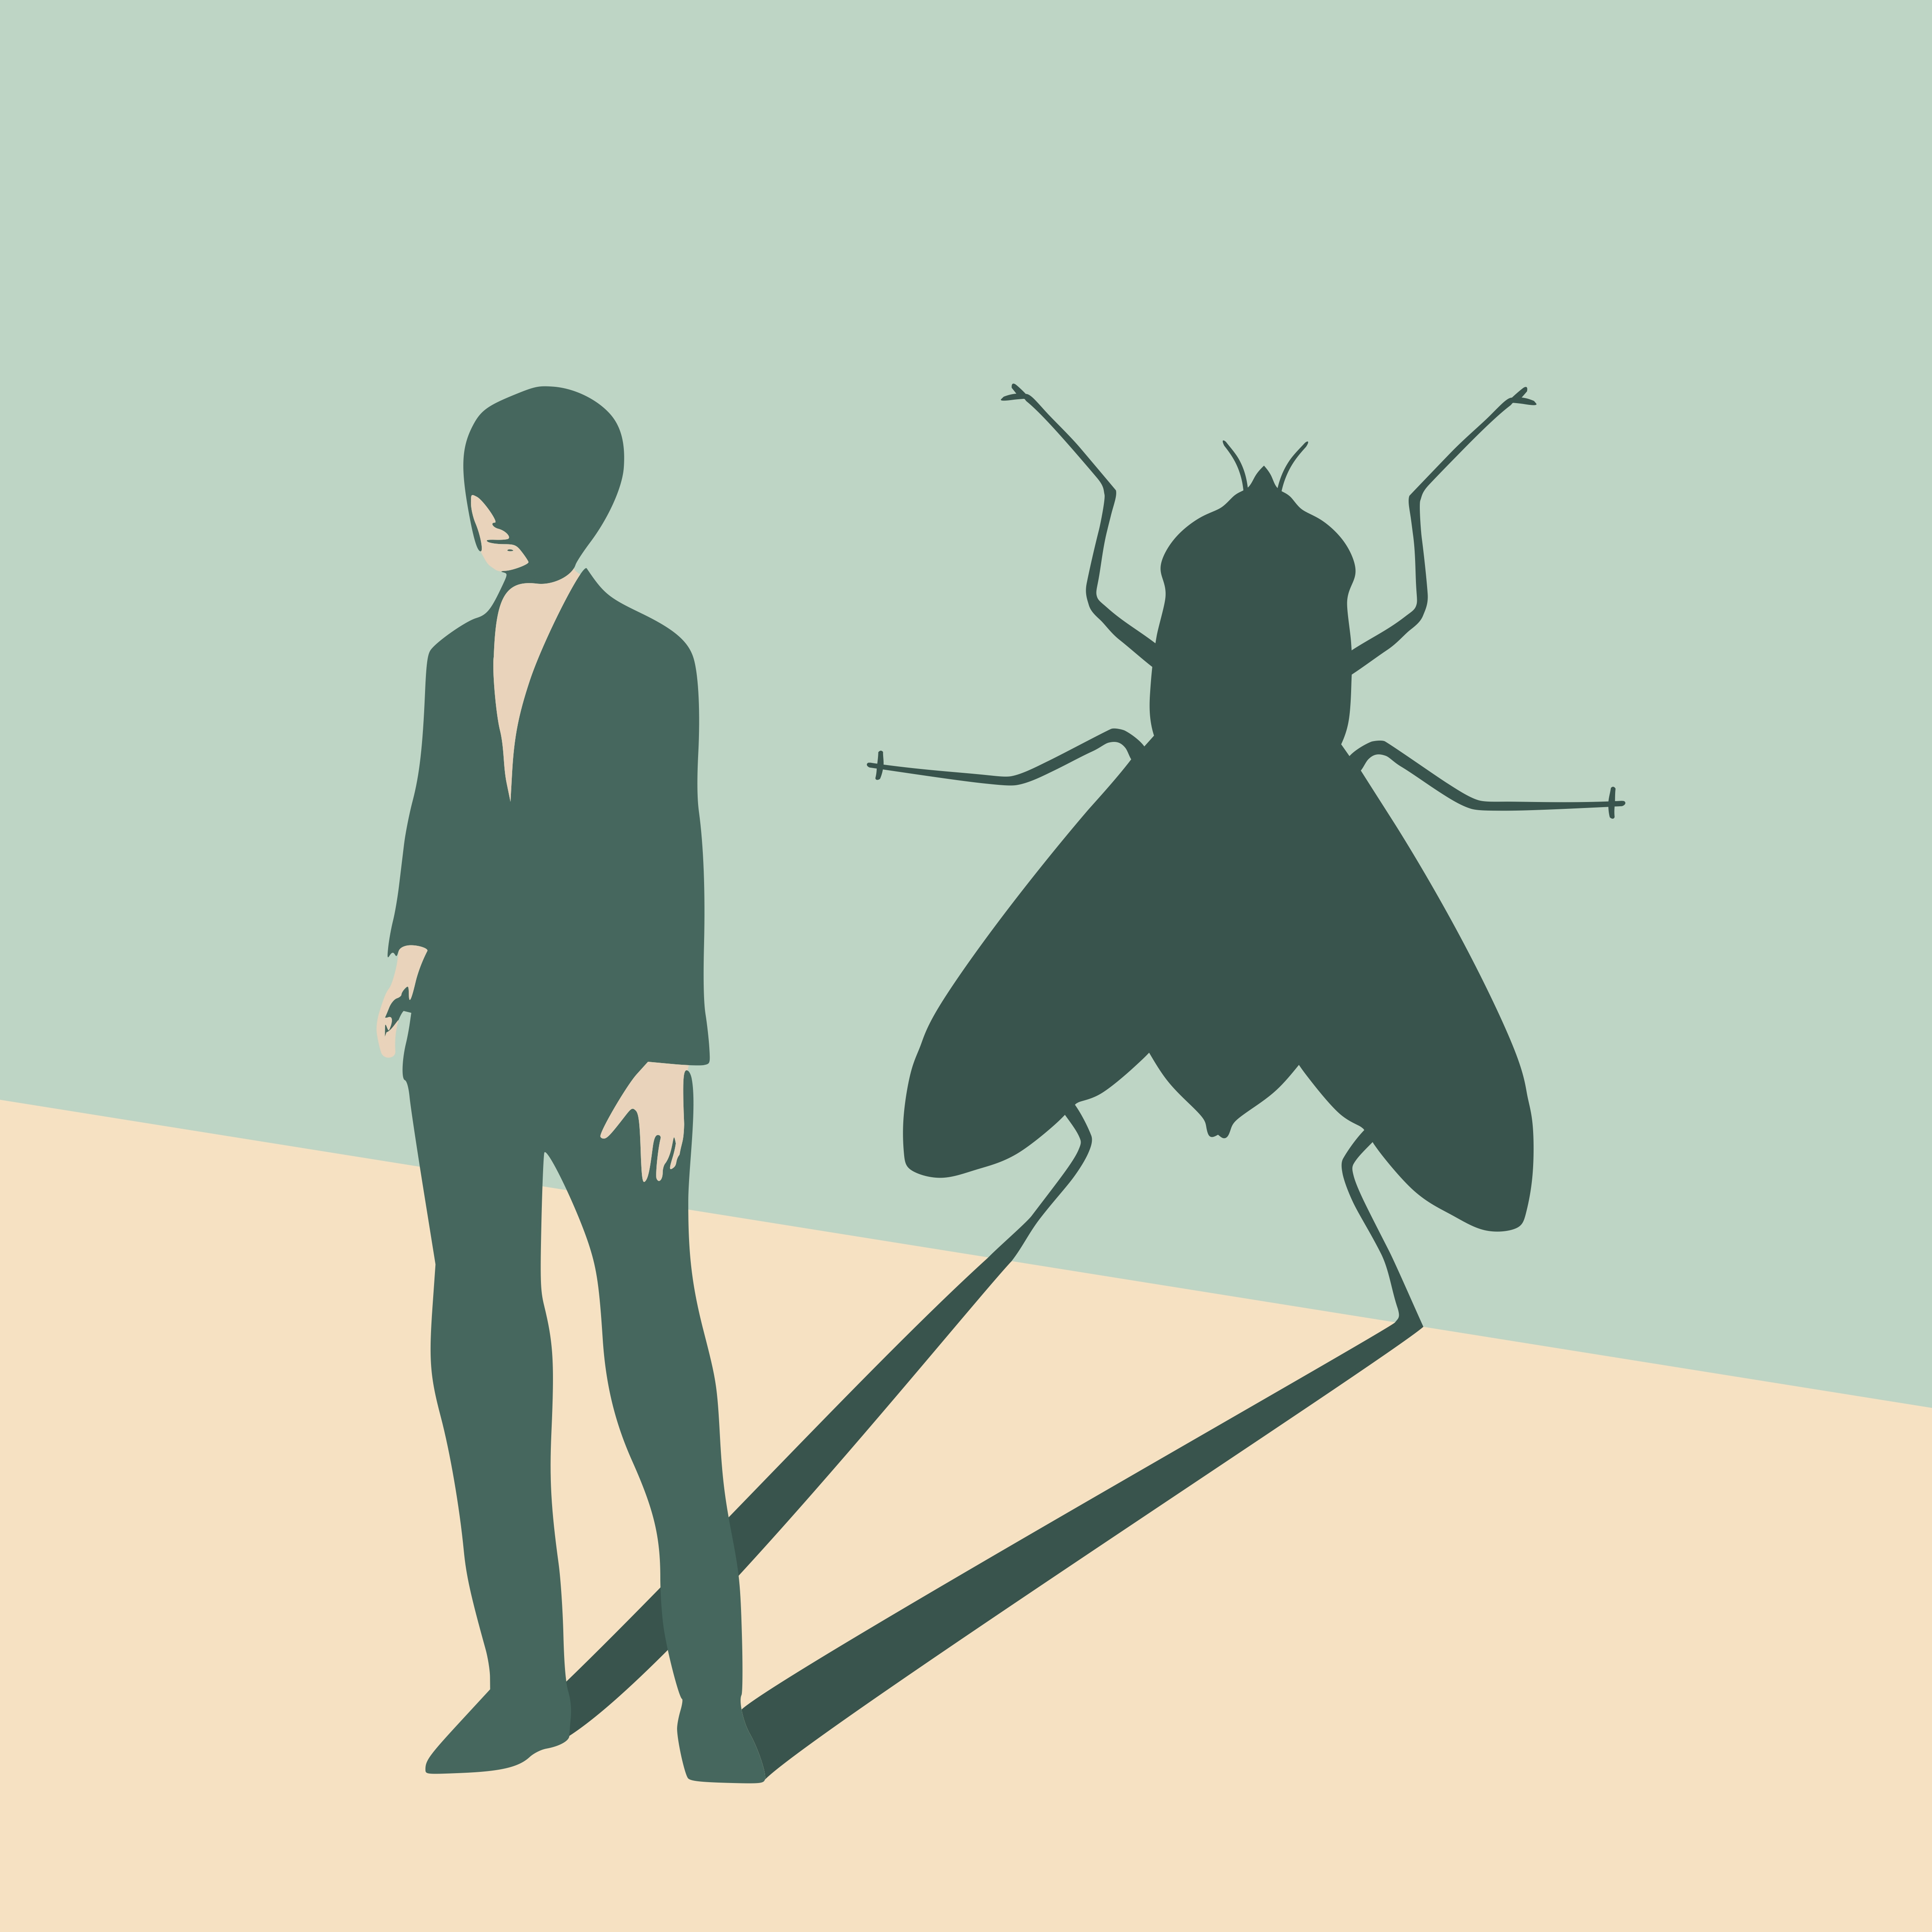 The fly shadow